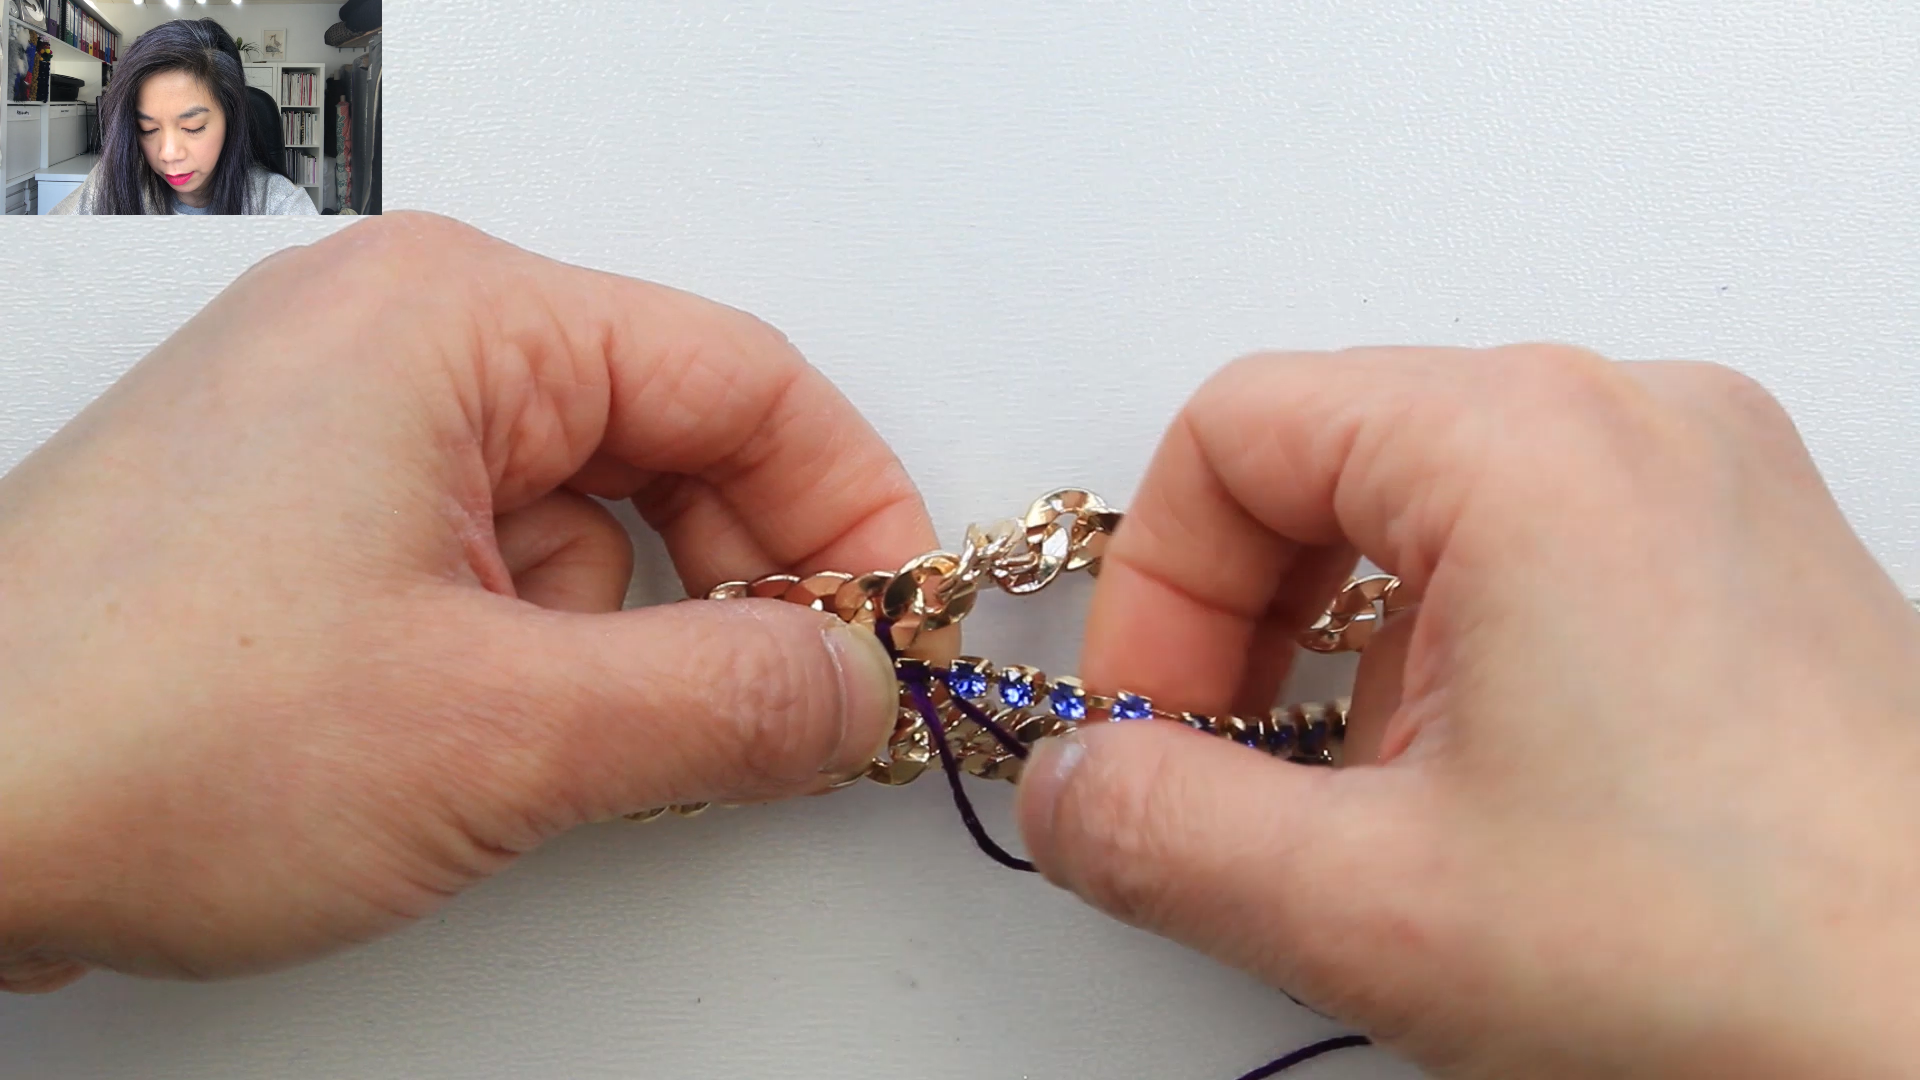 PART 4.1.2 - WEAVE STITCH - SINGLE ROW - CONNECTING A NEW THREAD - METHOD 2